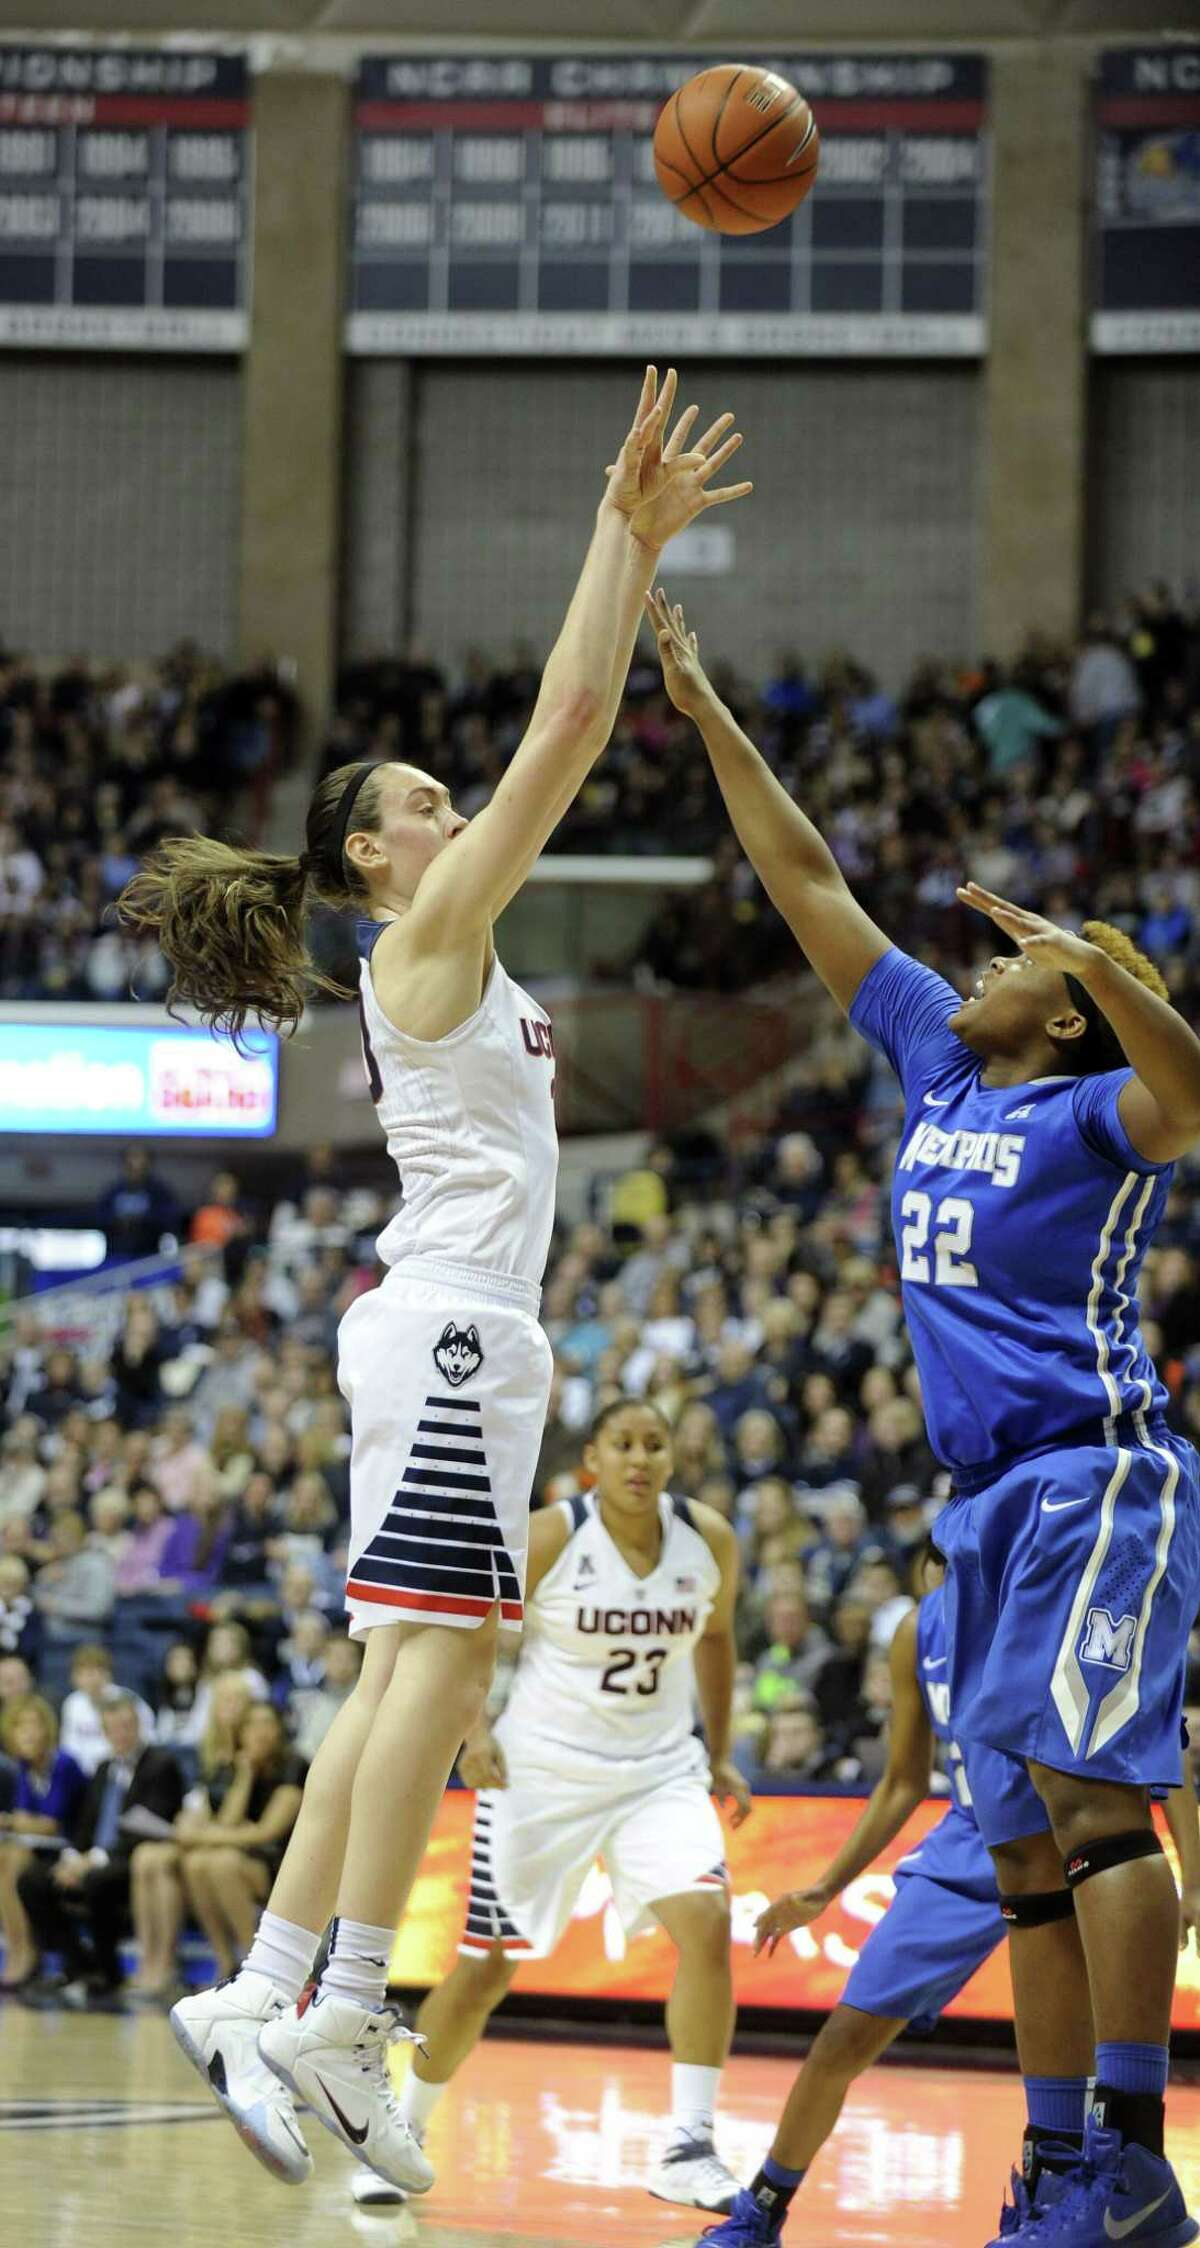 Connecticut's Breanna Stewart (30) shoots over Memphis' Brianna Wright (22) during the first half of an NCAA college basketball game in Storrs, Conn., on Saturday, Feb. 28, 2015. (AP Photo/Fred Beckham)